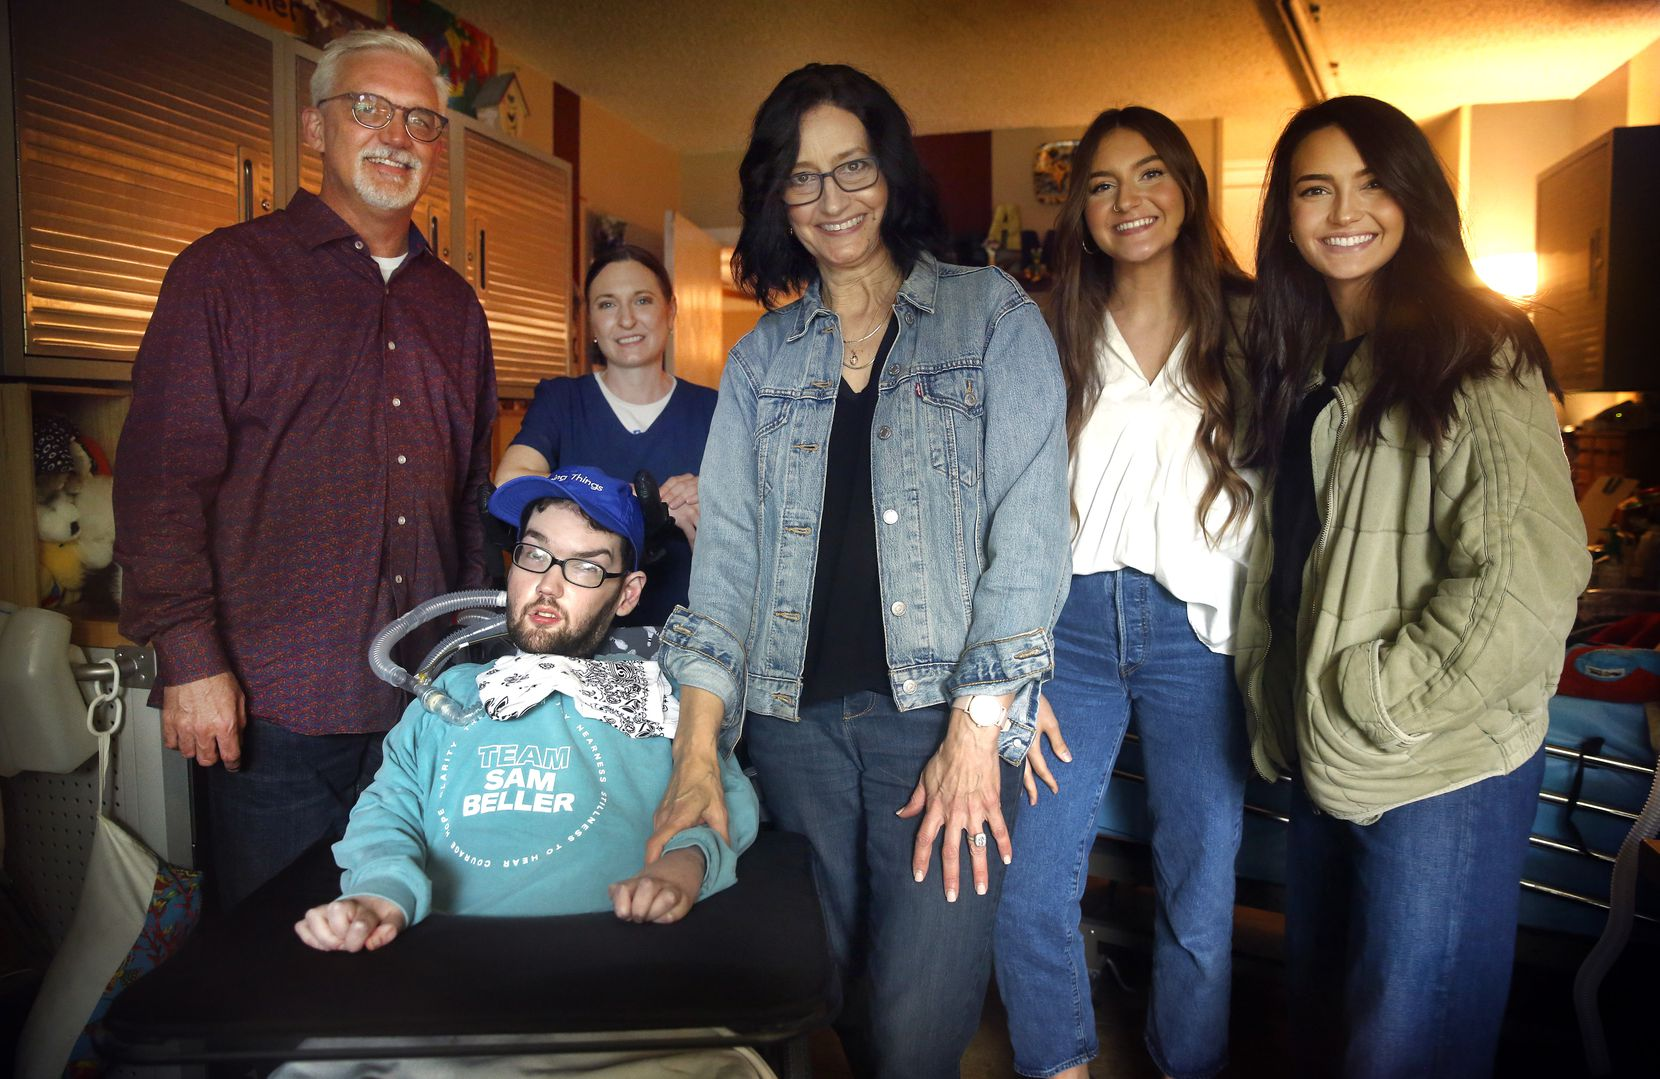 Sam Beller in his room at home with (from left) his father David, nurse Michelle Erving, mother Kelly, and sisters Simone and Tevah. For families like the Bellers, caring for loved ones most at risk of dying from complications of COVID-19, every day feels like a fight.